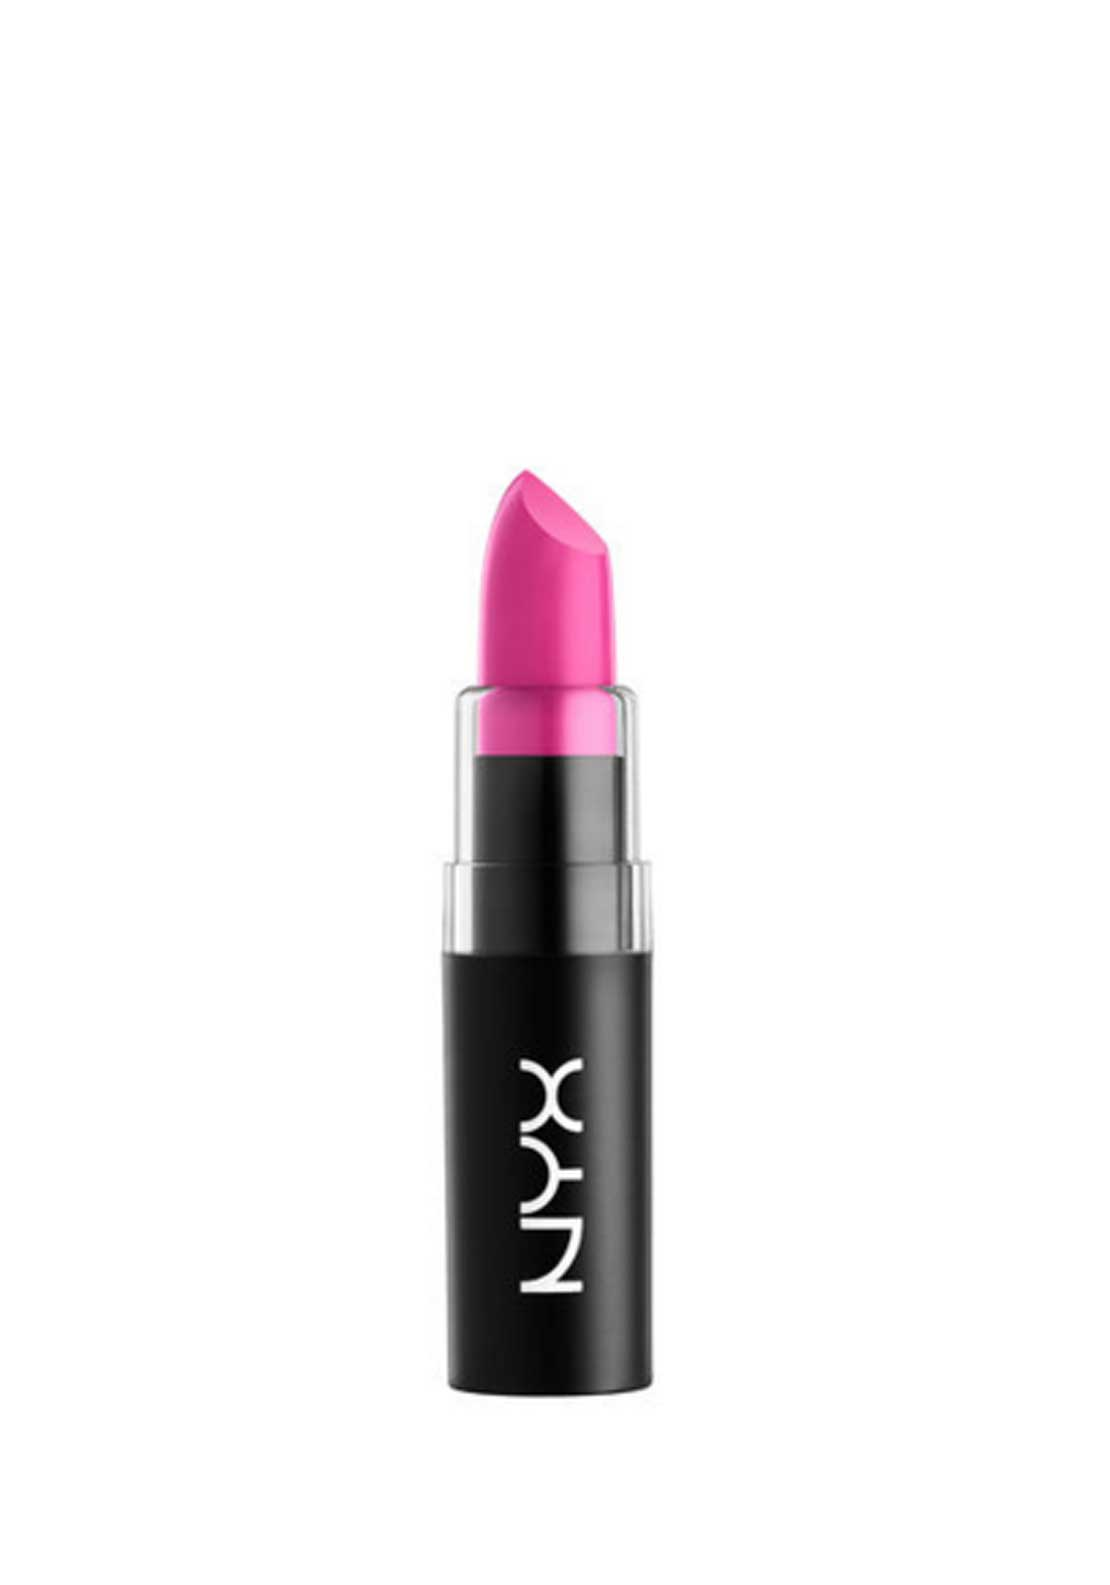 NYX Make Up Matte Lipstick, 02 Shocking Pink